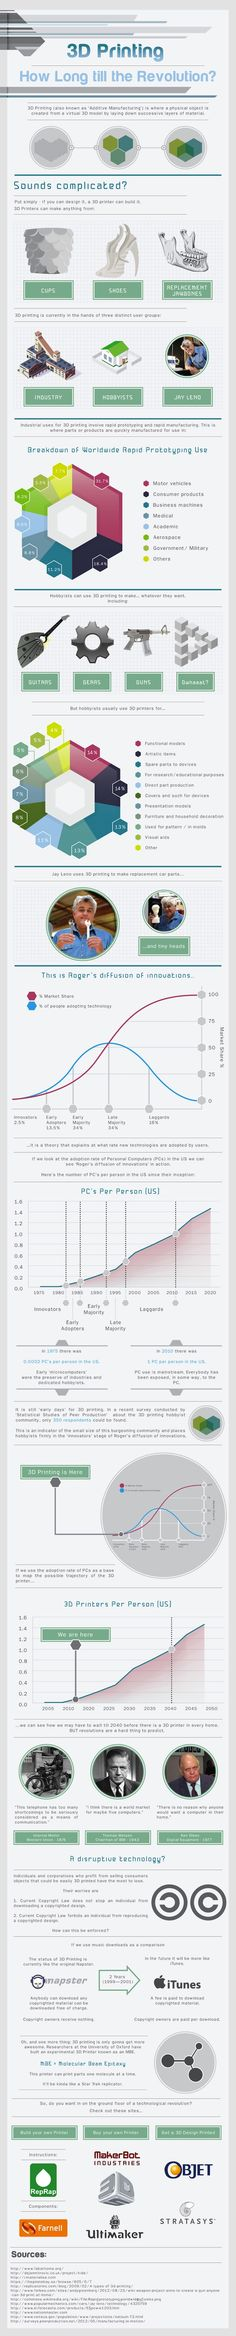 3D-Printing-in-the-Home-Farnell-Element14-Infographic-copy.jpg (640×6335)